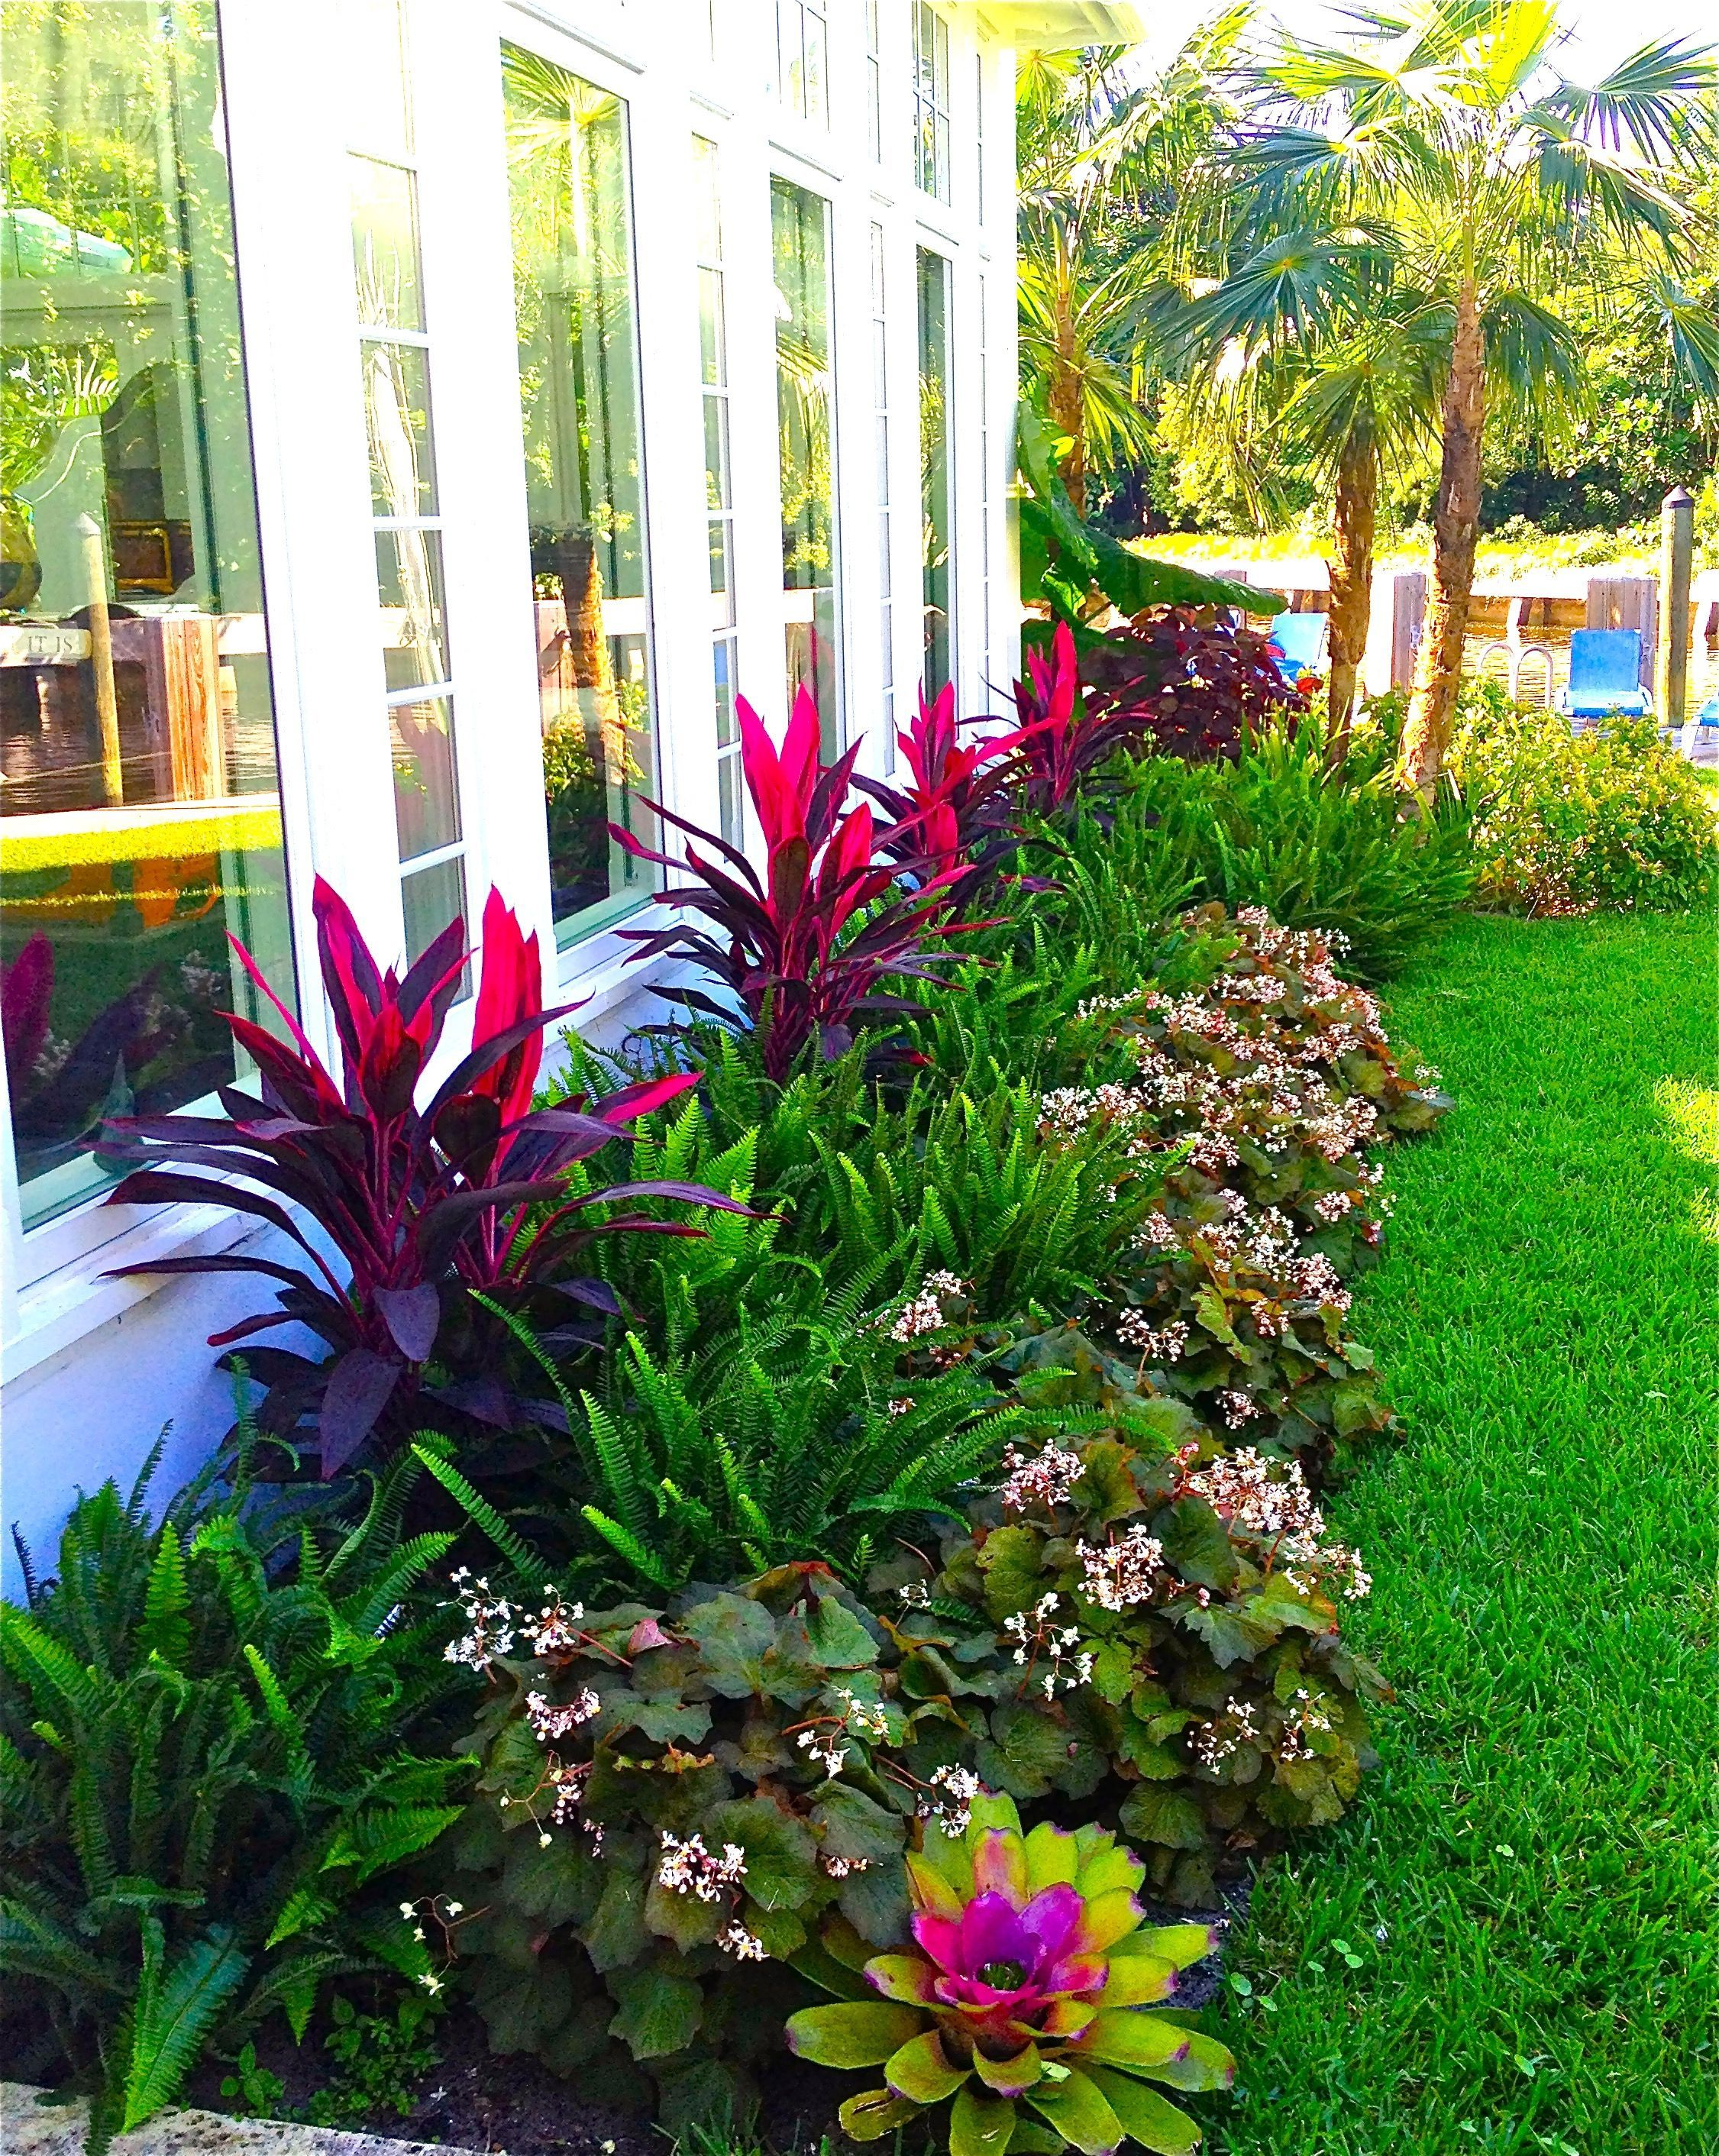 Steal These Cheap And Easy Landscaping Ideas For A Beautiful Backyard And Front Yard Front Yard Landscaping Design Outdoor Landscaping Tropical Landscaping Florida backyard garden design ideas